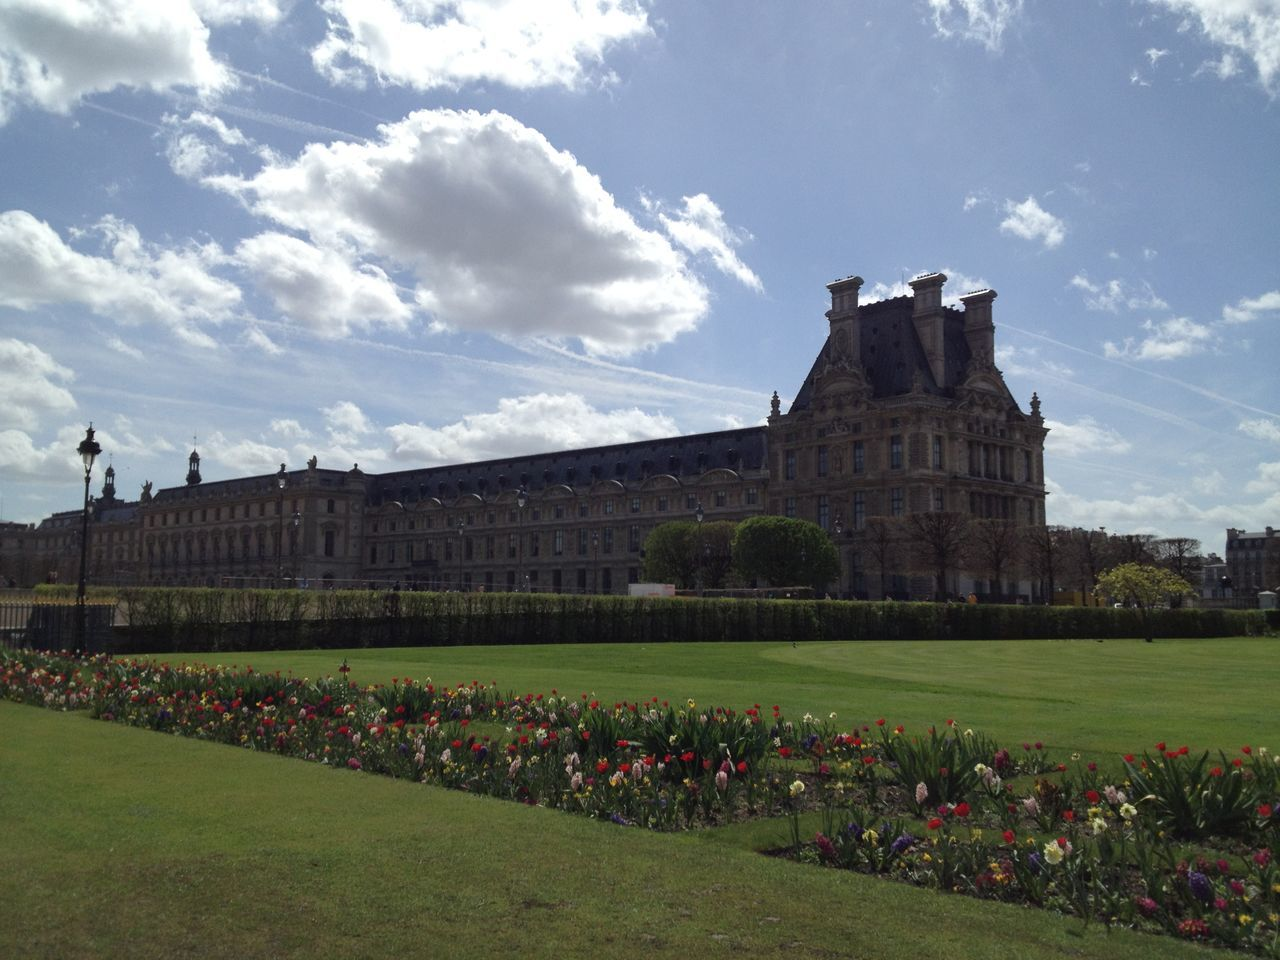 architecture, built structure, history, sky, grass, building exterior, day, outdoors, no people, nature, flower